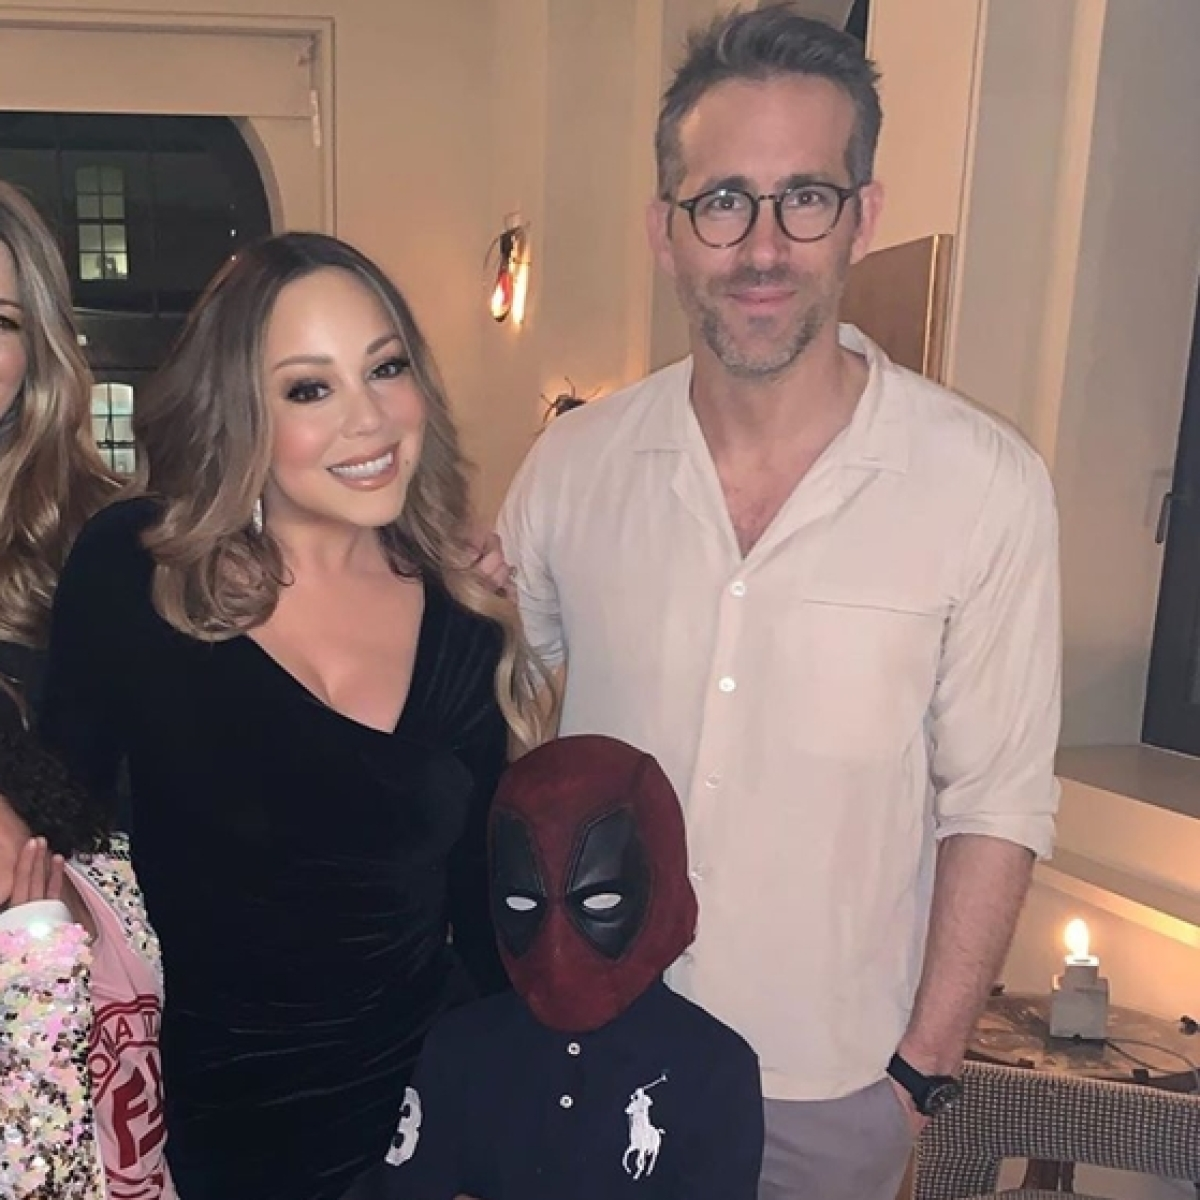 Will he ever recover? Mariah Carey's son sneaks up on Ryan Reynolds wearing a 'Deadpool' mask